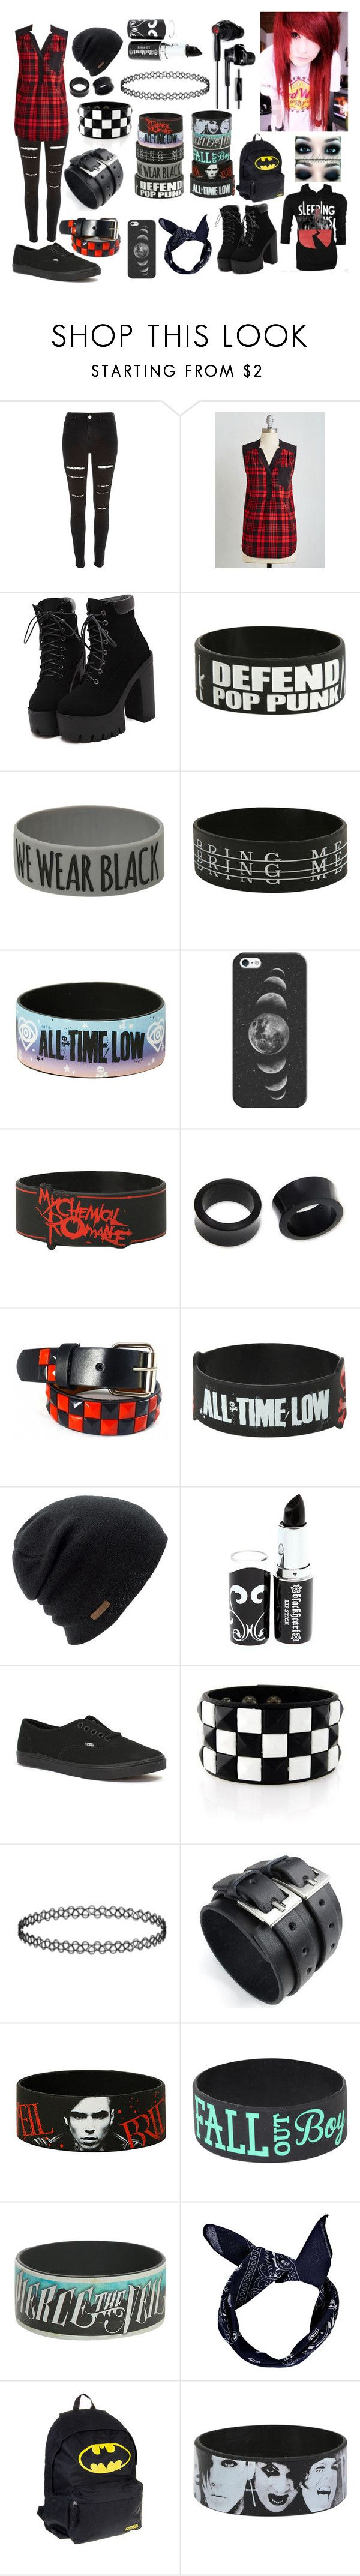 """Red Scene/Emo"" by abipatterson on Polyvore featuring River Island, Coven, Casetify, NOVICA, Coal, Vans and Yurbuds"